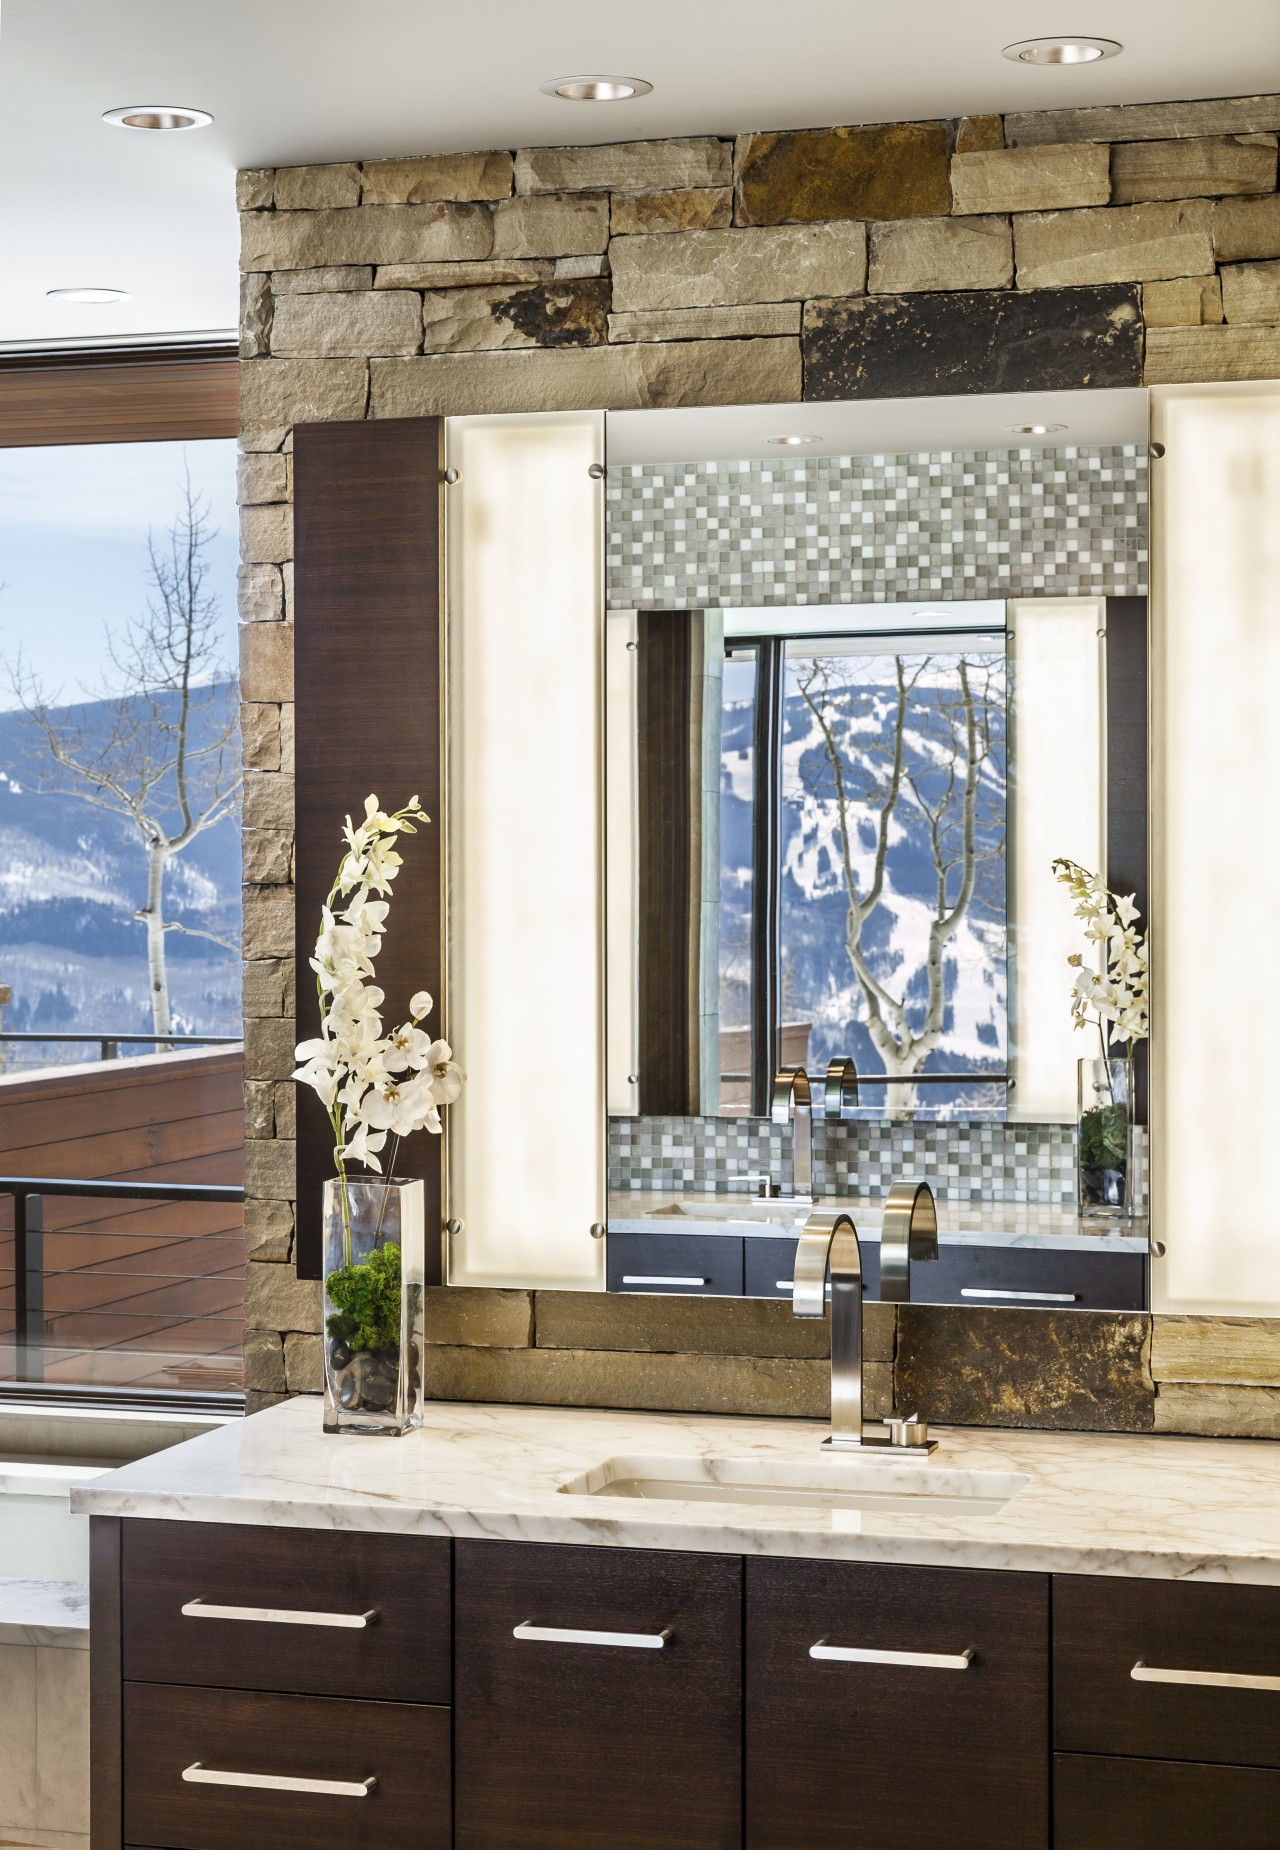 Contrasting textures and natural materials feature throughout this cabinetry, countertop, home, interior design, window, white